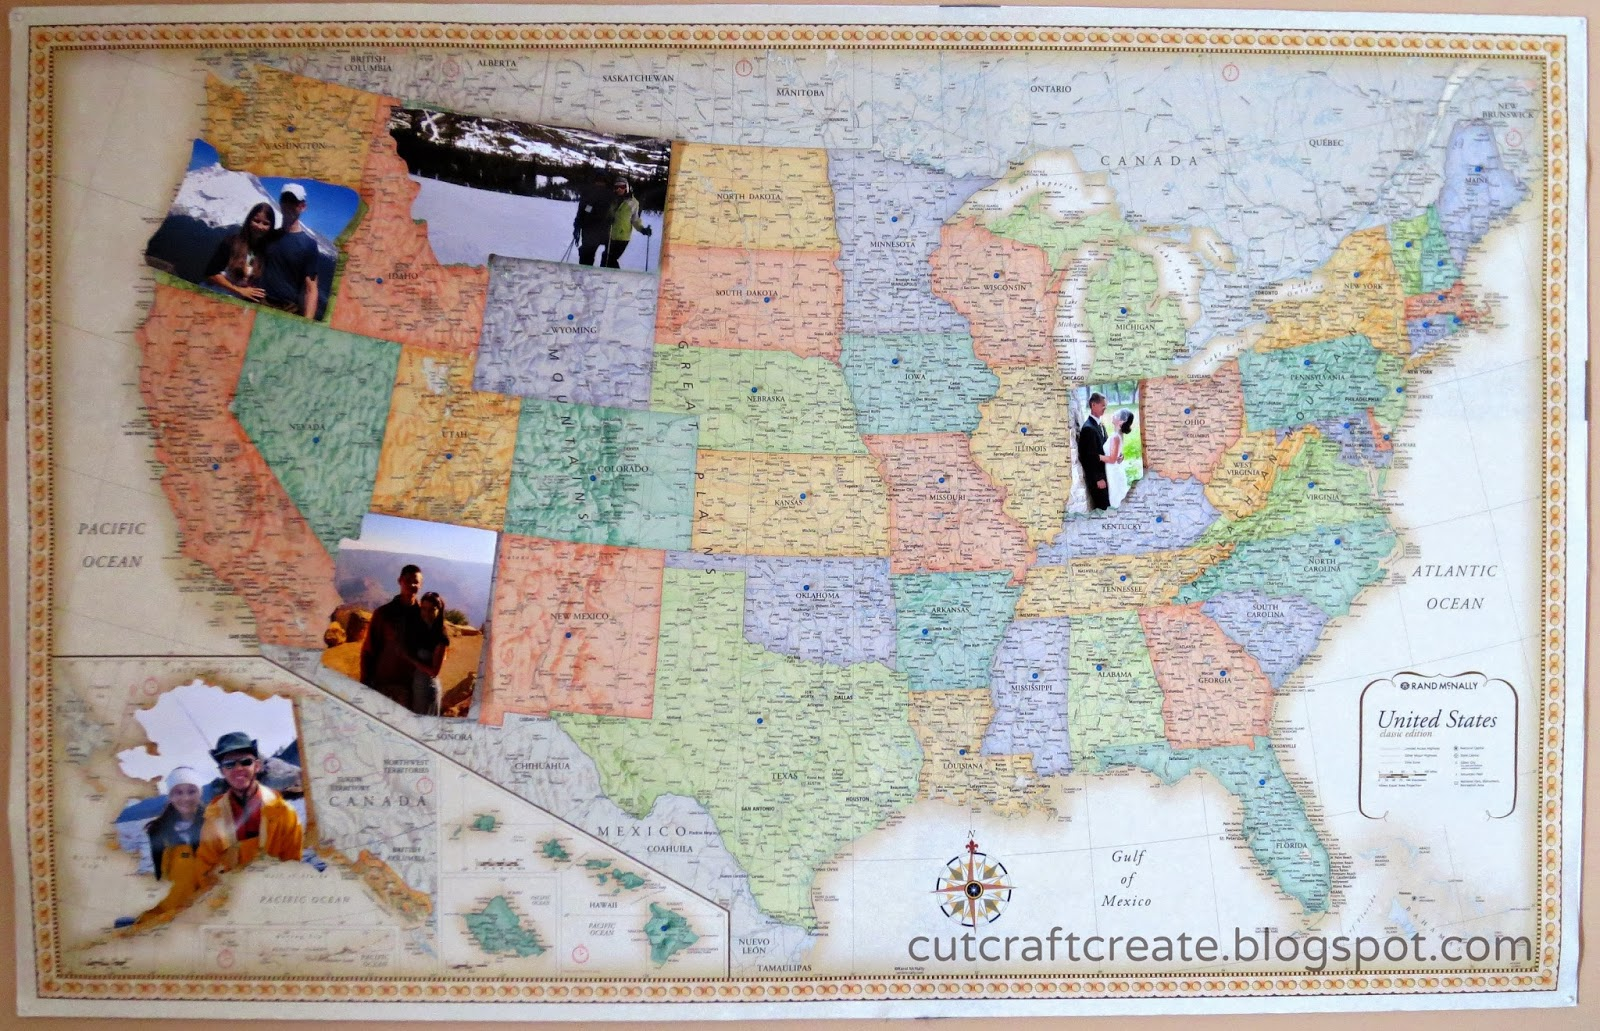 Cut Craft Create Personalized Photo Map for our Paper Anniversary – Us Travel Map States